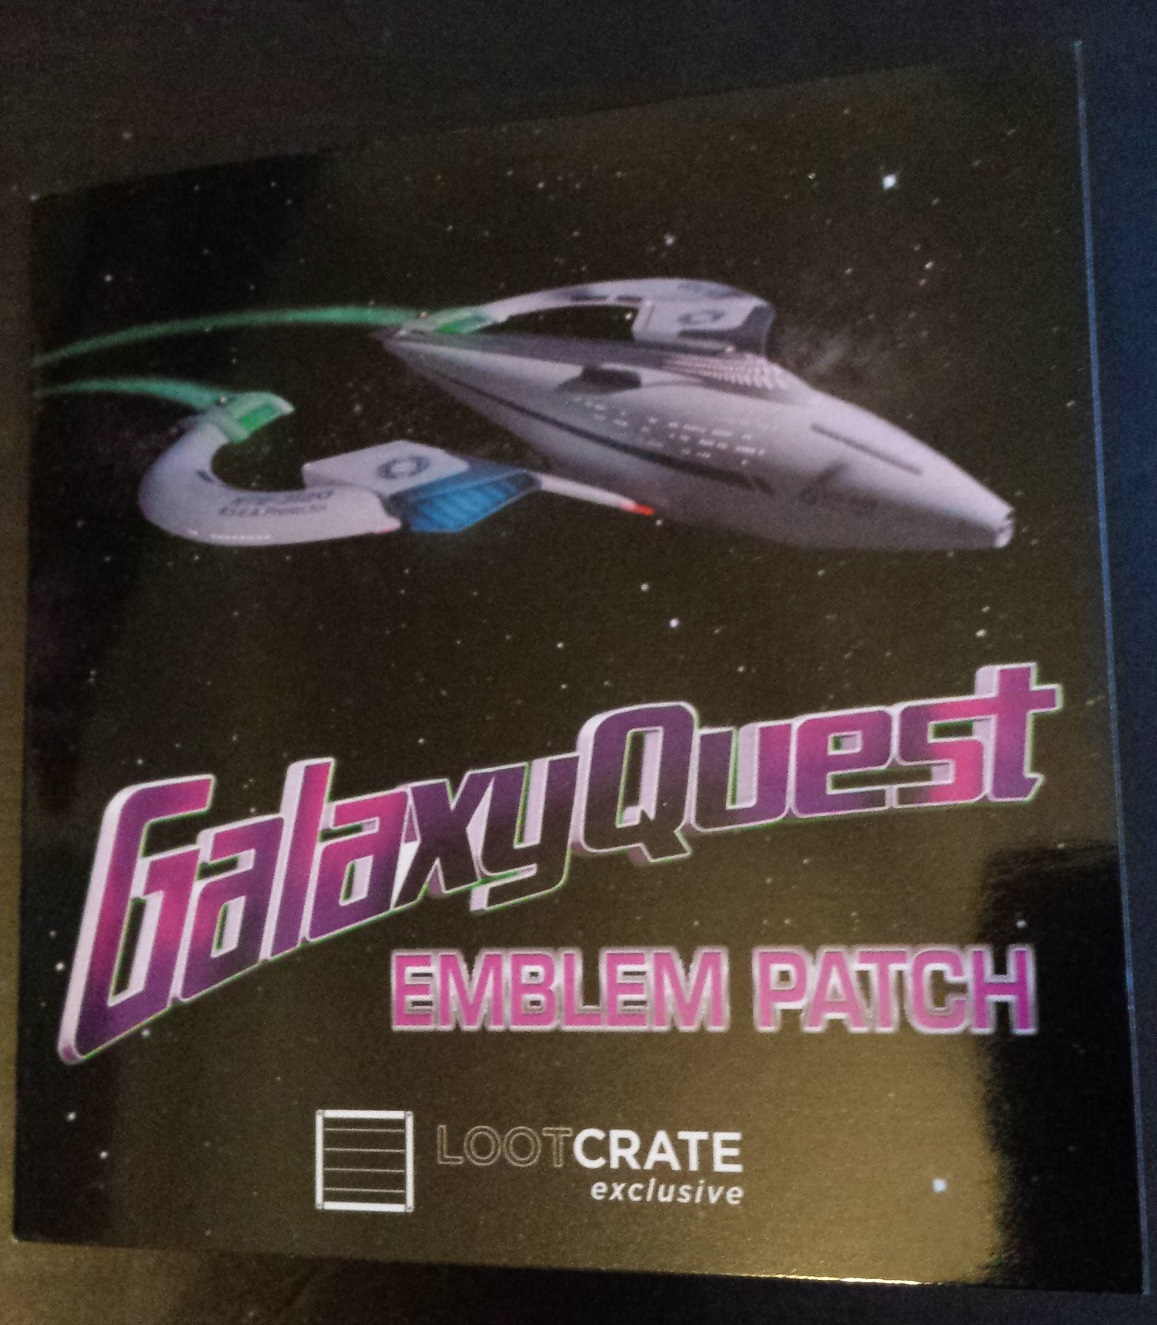 Galaxy quest emblem patch, loot crate, loot crate review, december loot crate, discovery loot crate